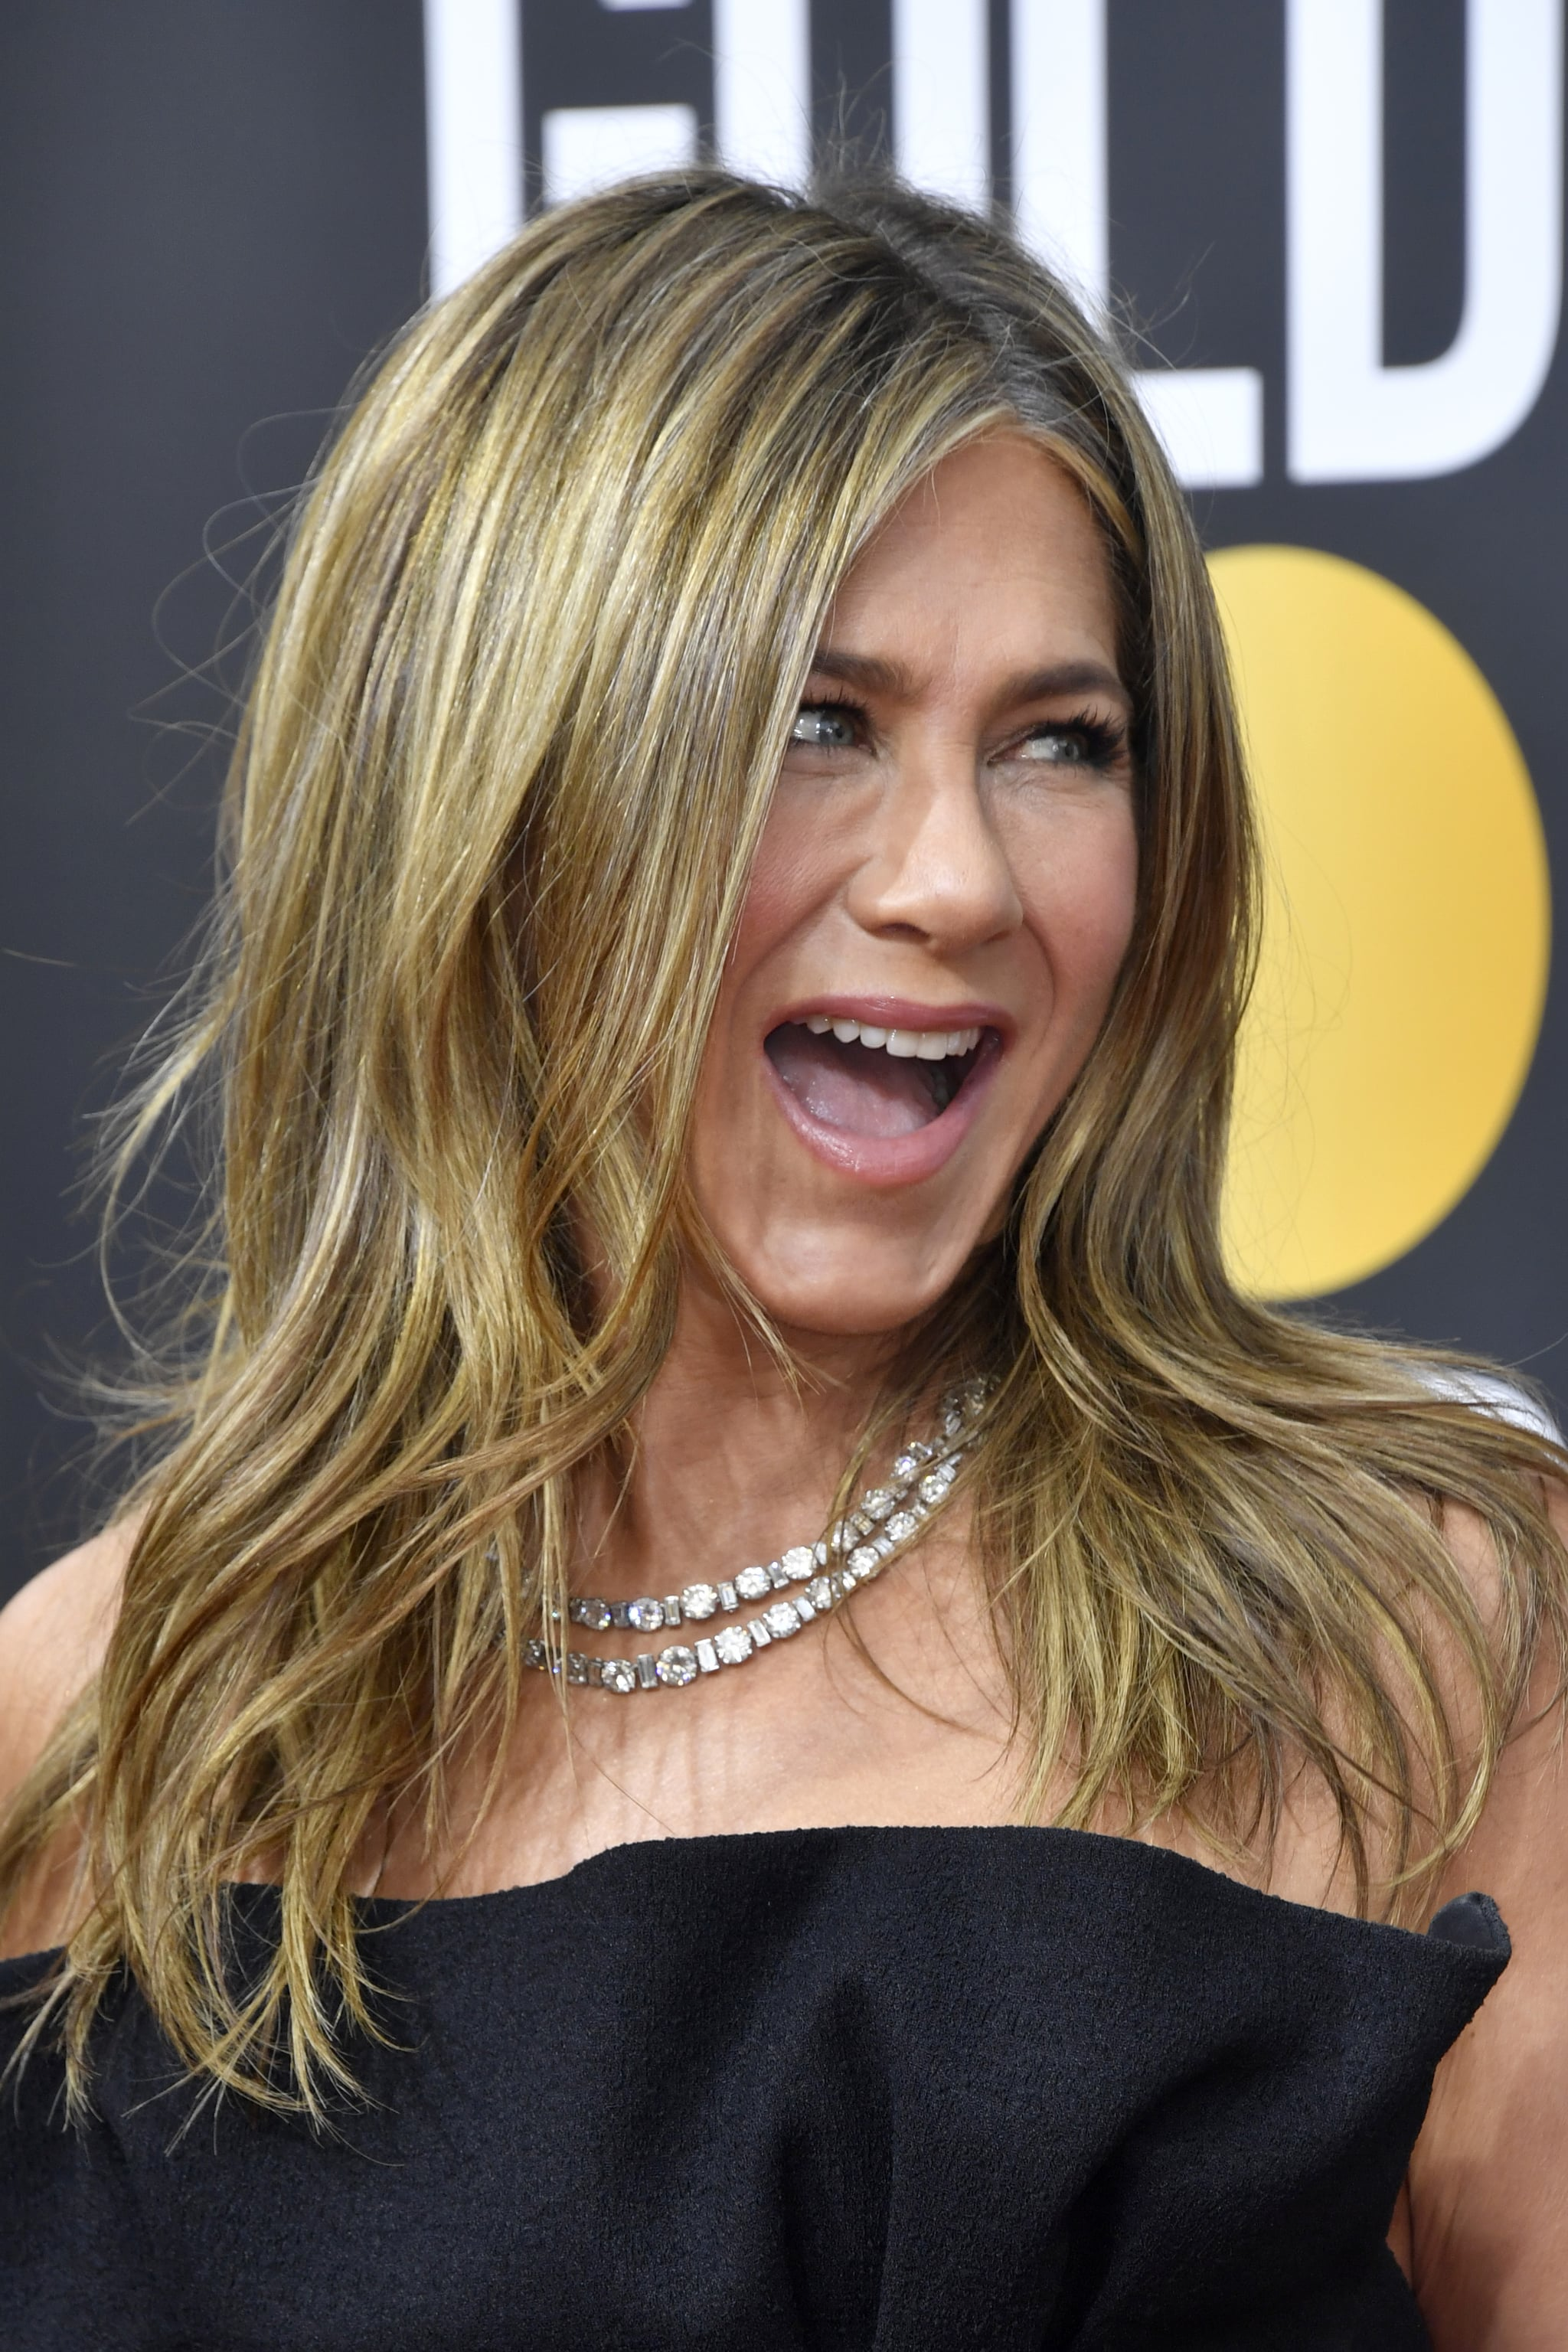 Jennifer Aniston At The 2020 Golden Globes We Guarantee You Didn T Catch These Moments At The 2020 Golden Globe Awards Popsugar Celebrity Photo 3